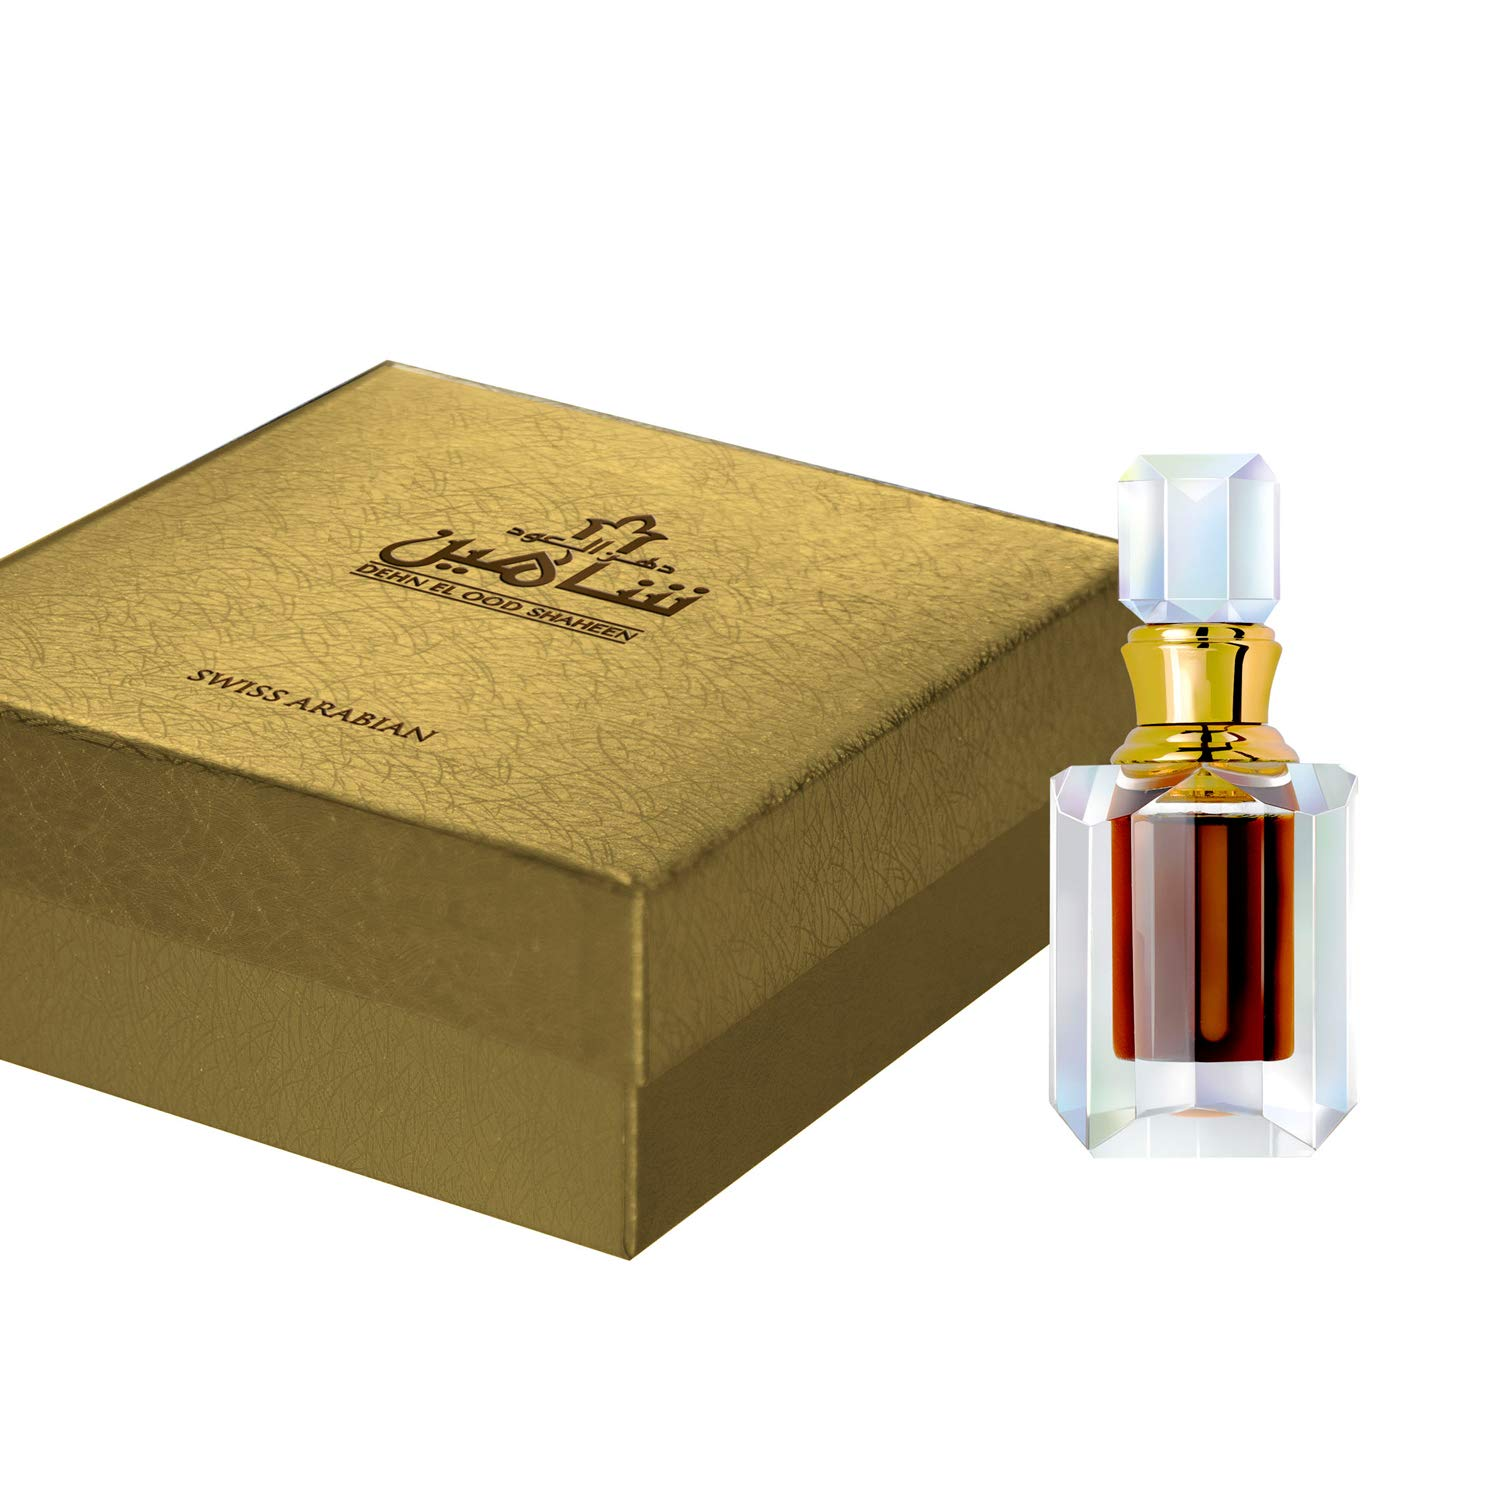 Dehn El Oud Shaheen 6mL | Alcohol Free and Natural Oudh Attar | Oudh Wood (Agarwood) Sourced from Indonesia and Cambodia | Perfume Oil for Men and Women | by Fragrance Artisan Swiss Arabian of Dubai